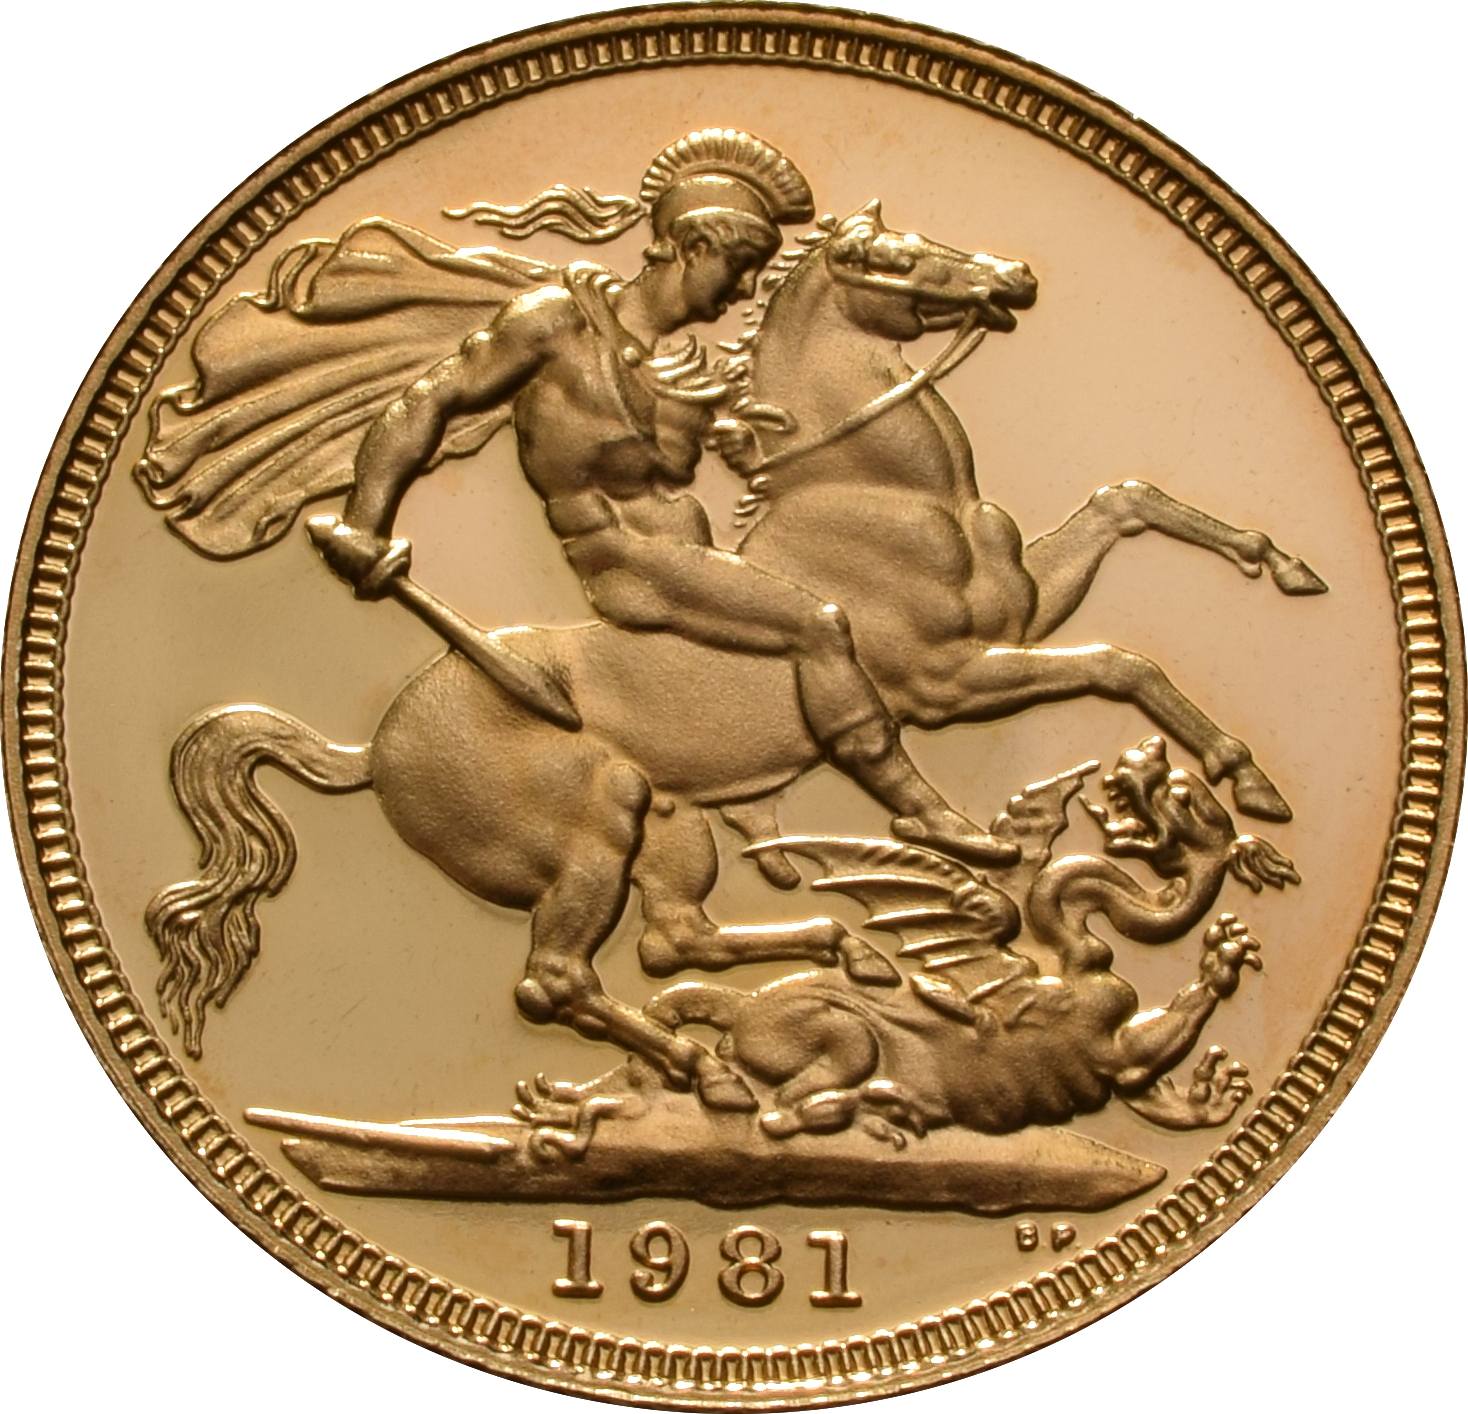 1981 Gold Sovereign - Elizabeth II Decimal Head Proof